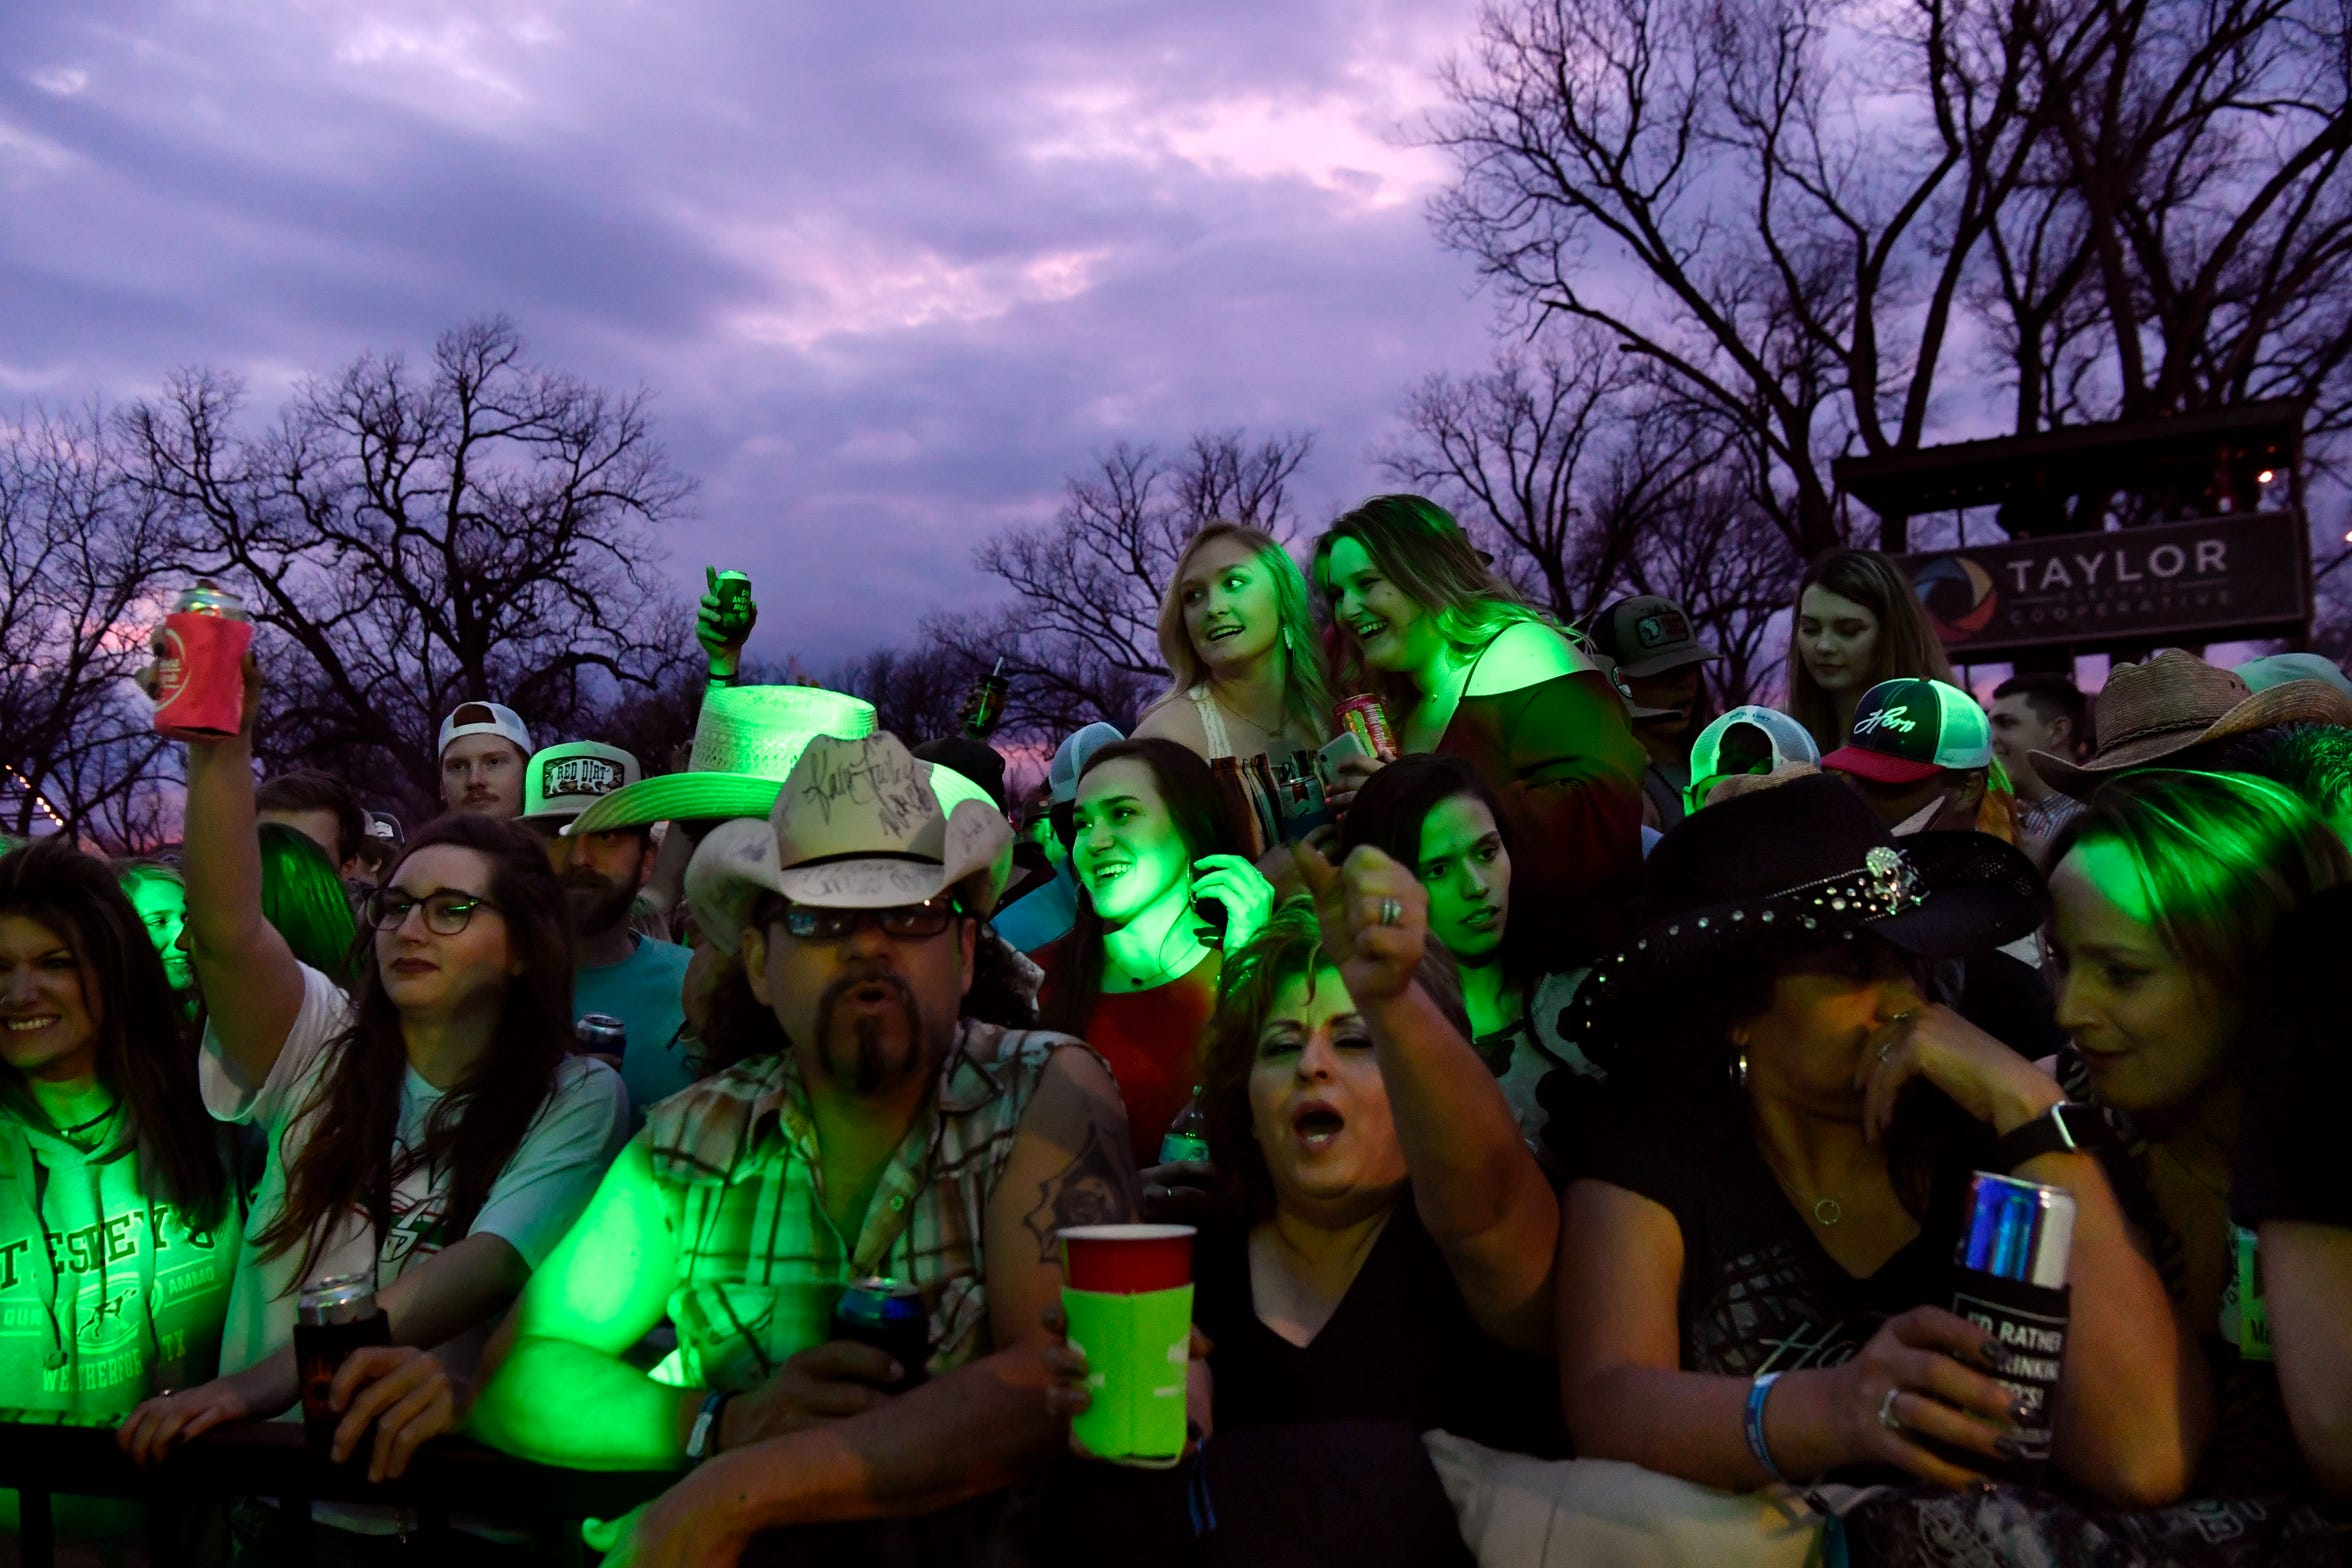 Fans listen and cheer Roger Creager during his performance at the Back Porch of Texas at the 2019 Outlaws & Legends Music Festival.